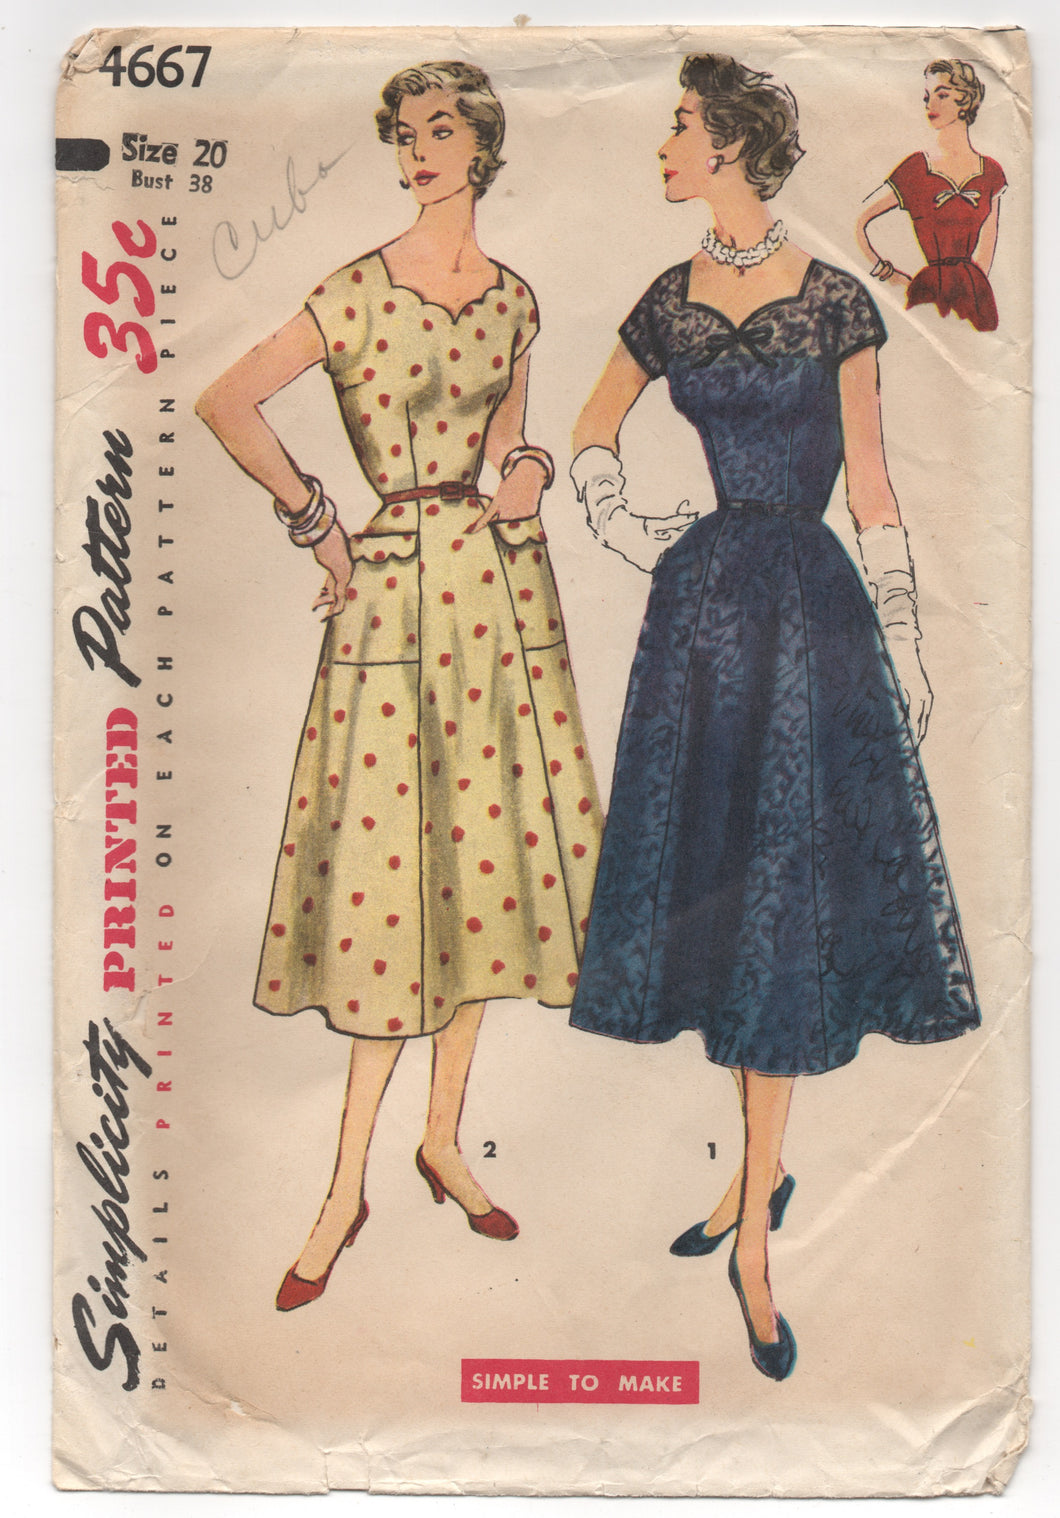 1950's Simplicity Day Dress with Scallop Neckline and Pockets - Bust 38